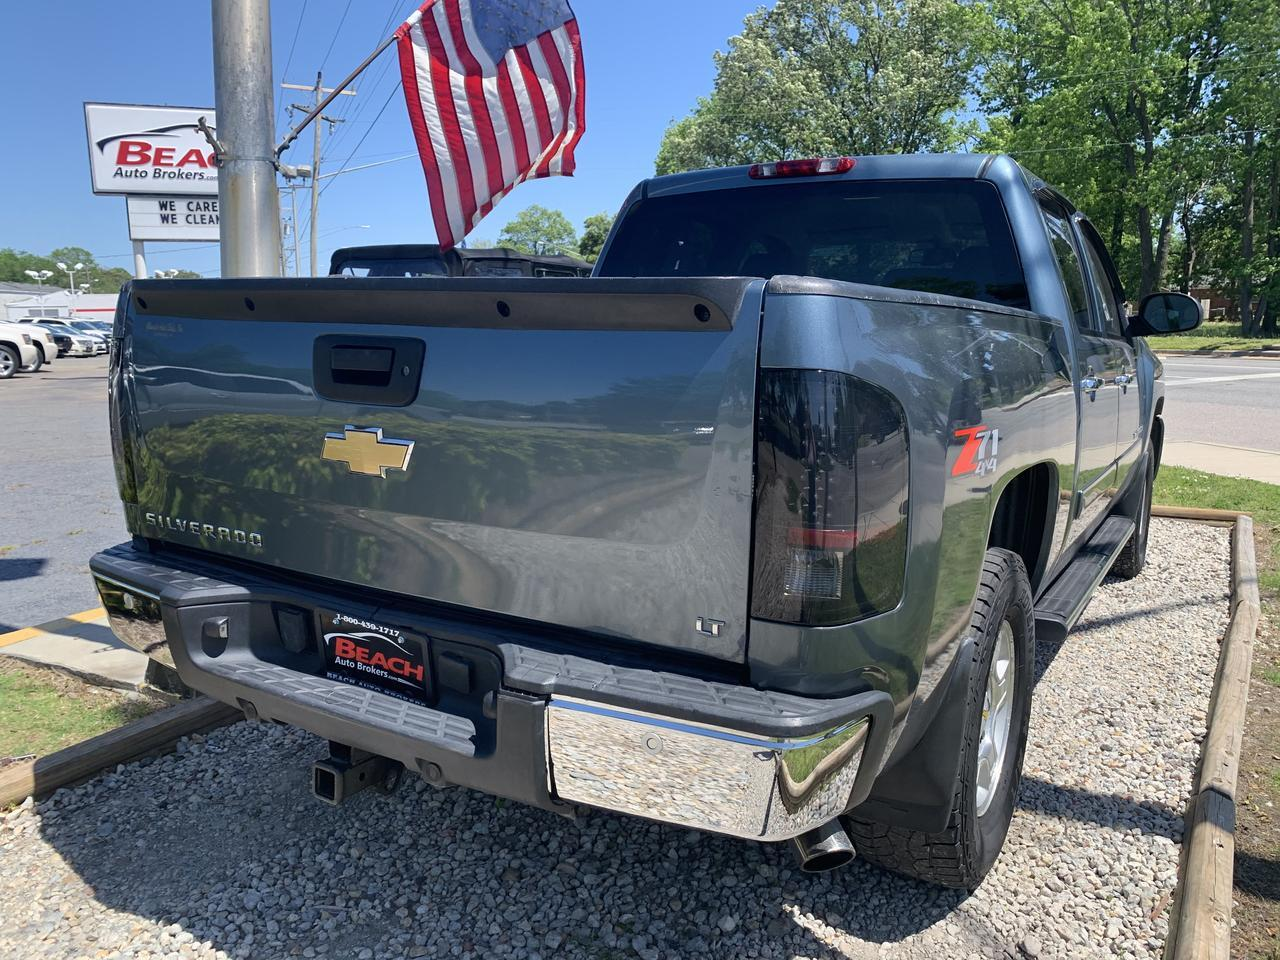 2008 CHEVROLET SILVERADO 1500 LT CREW CAB 4X4, WARRANTY, Z71 OFF ROAD PKG, BLUETOOTH, PARKING SENSORS, SIRIUS RADIO, ONSTAR! Norfolk VA